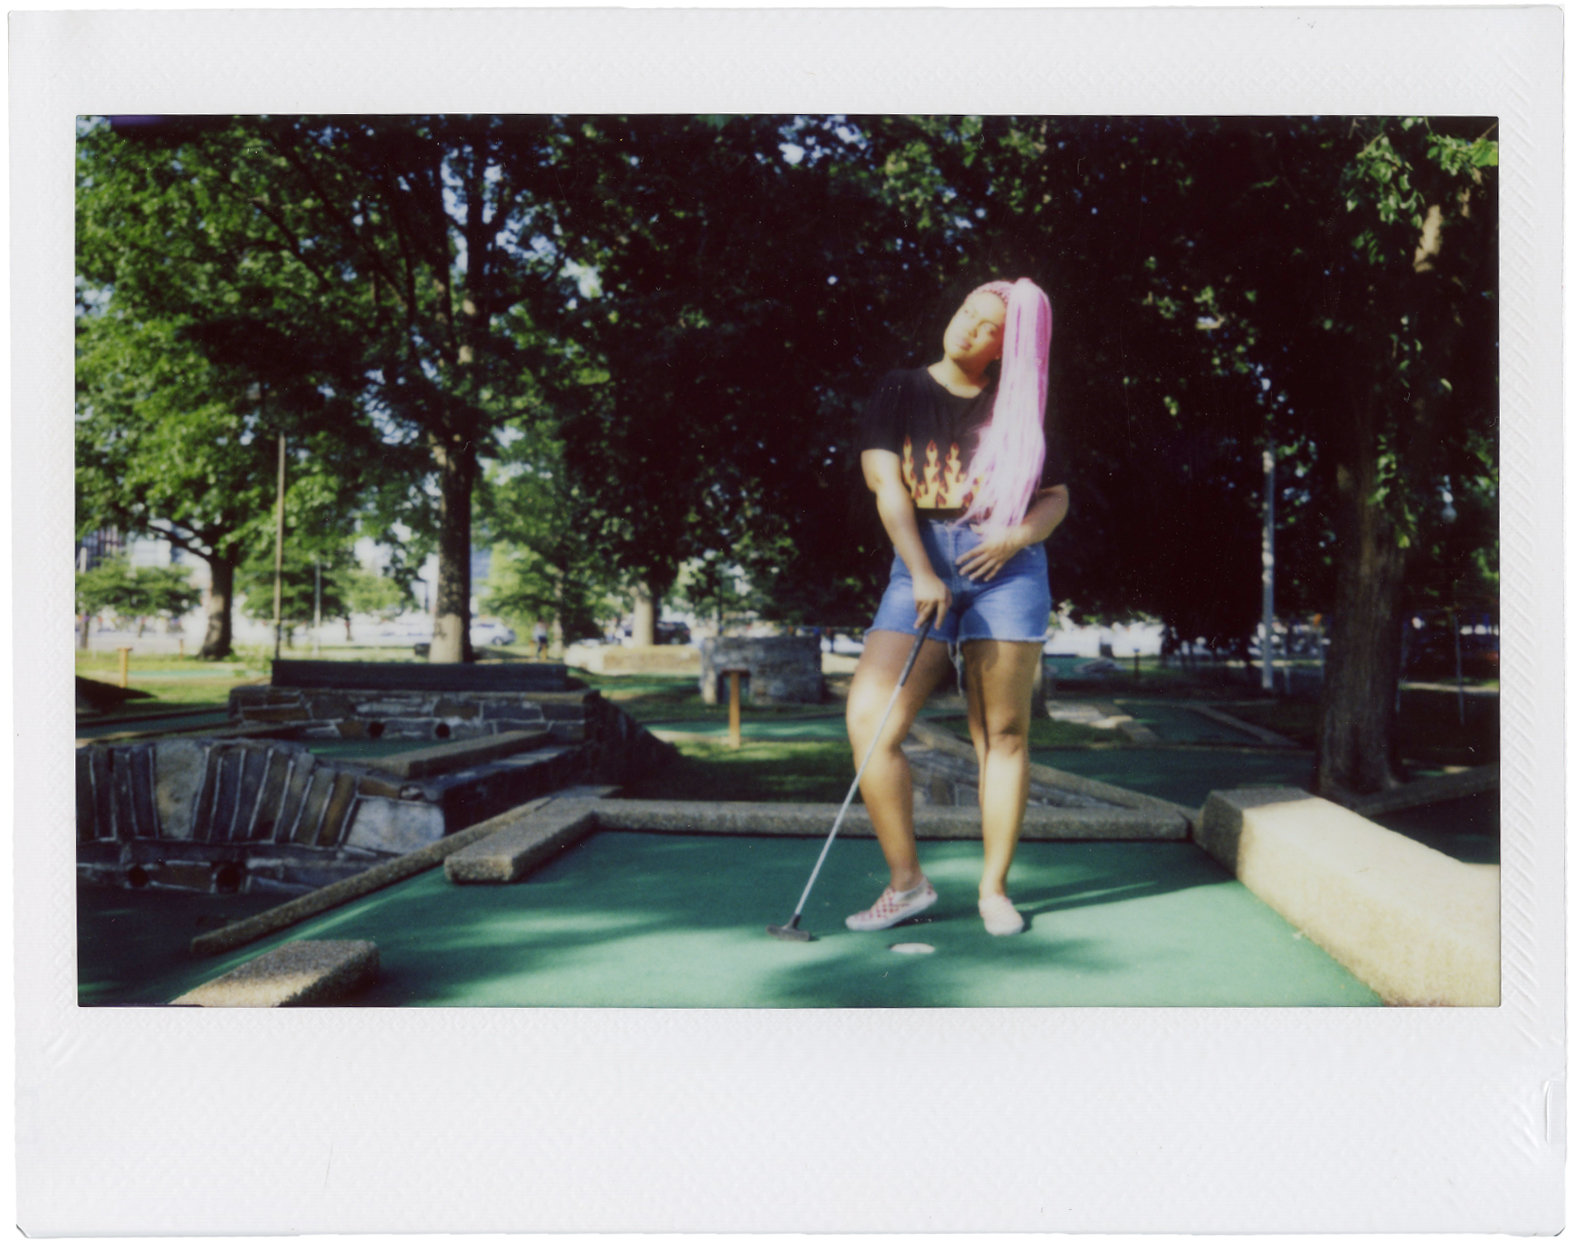 How Mini-Golf Played A Big Role In Desegregating Public Rec Spaces - See full story at npr.org.